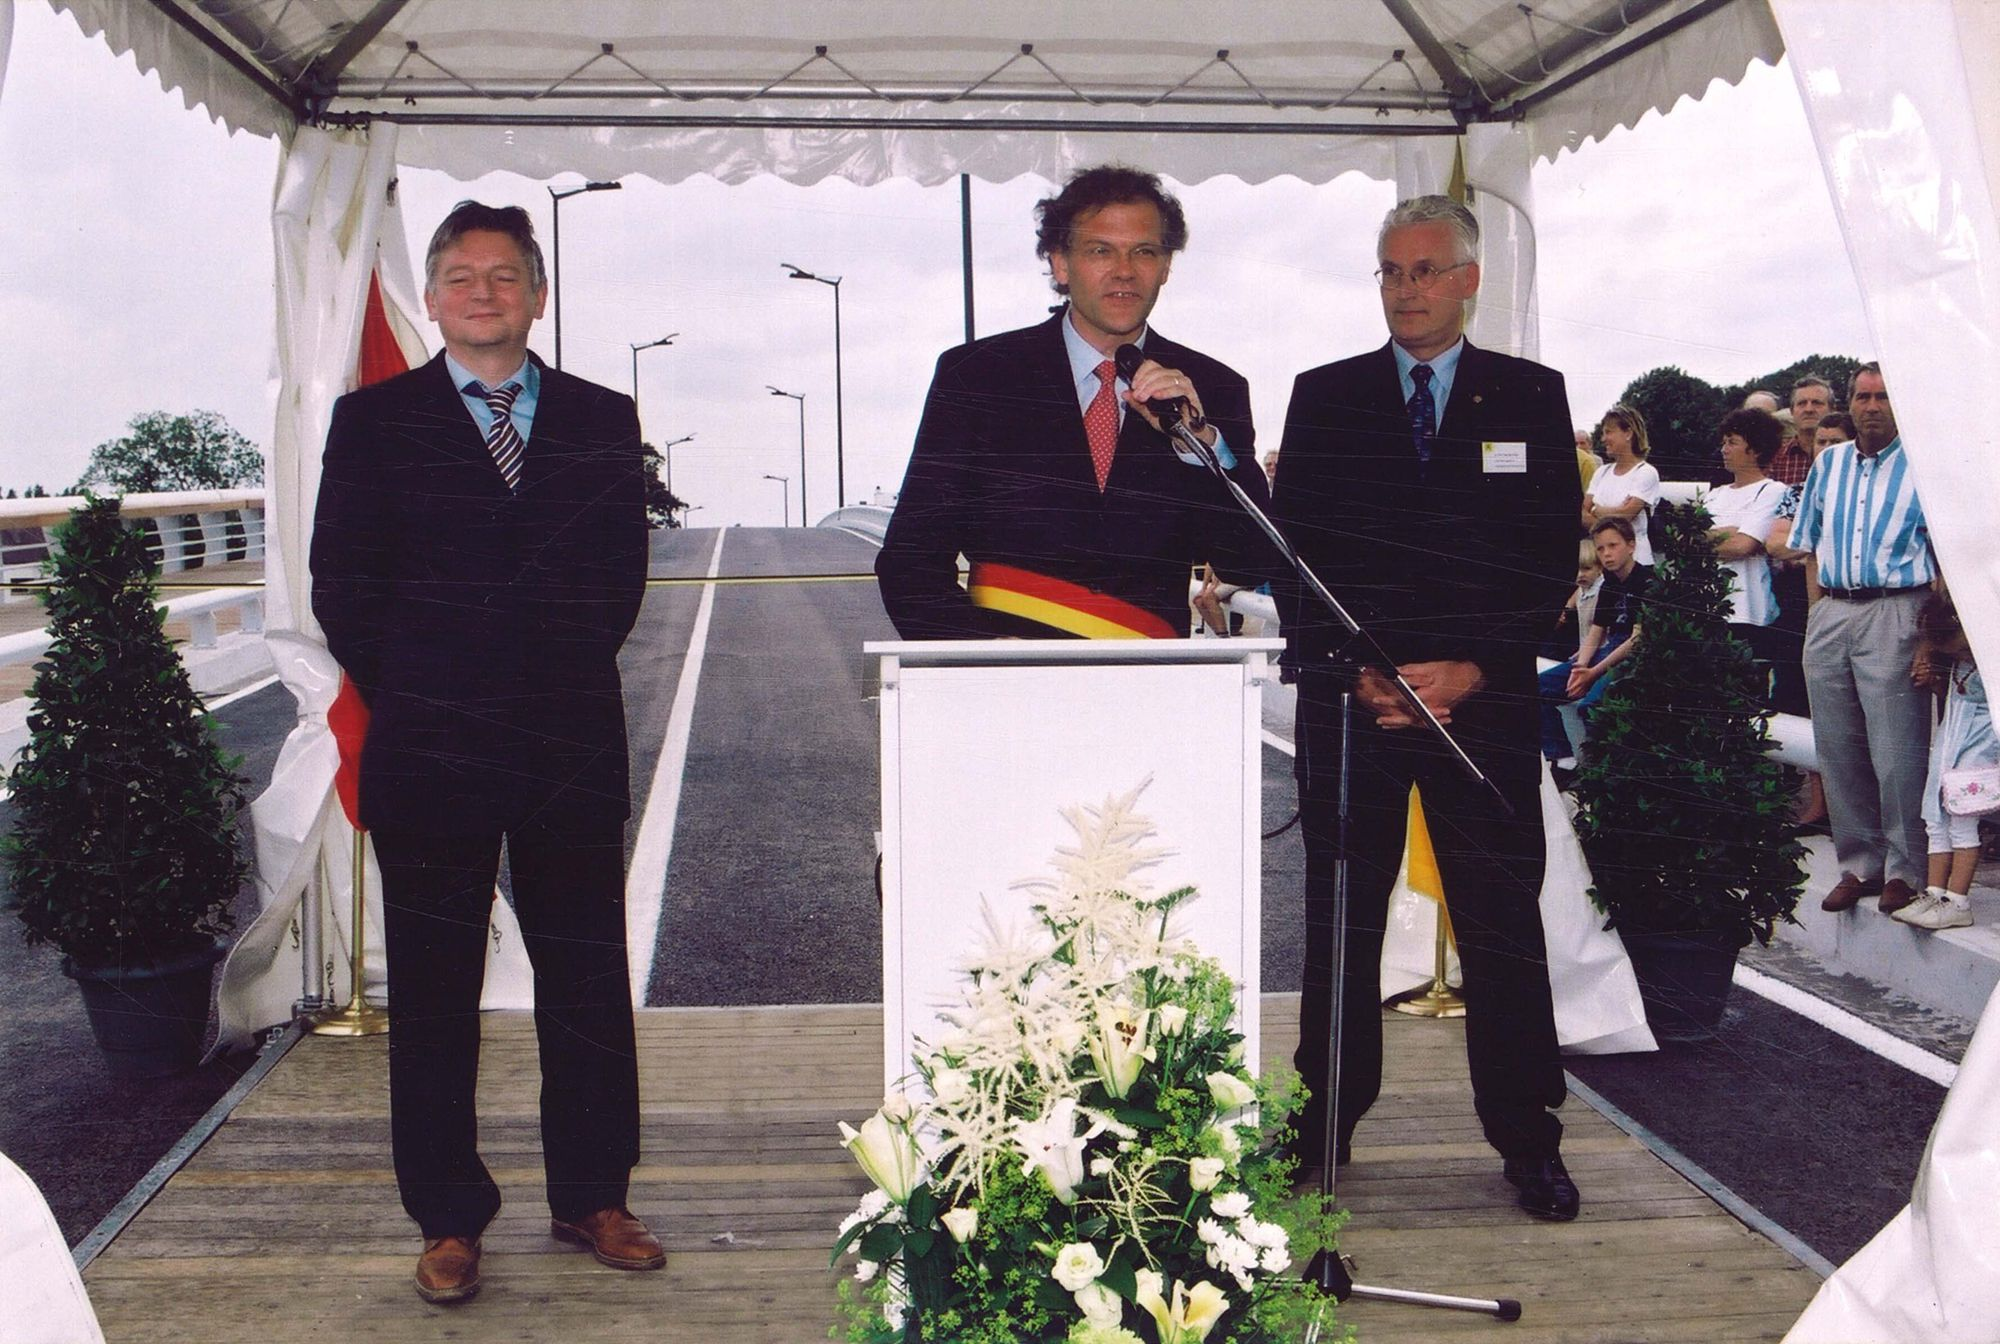 Openstelling Groeningebrug